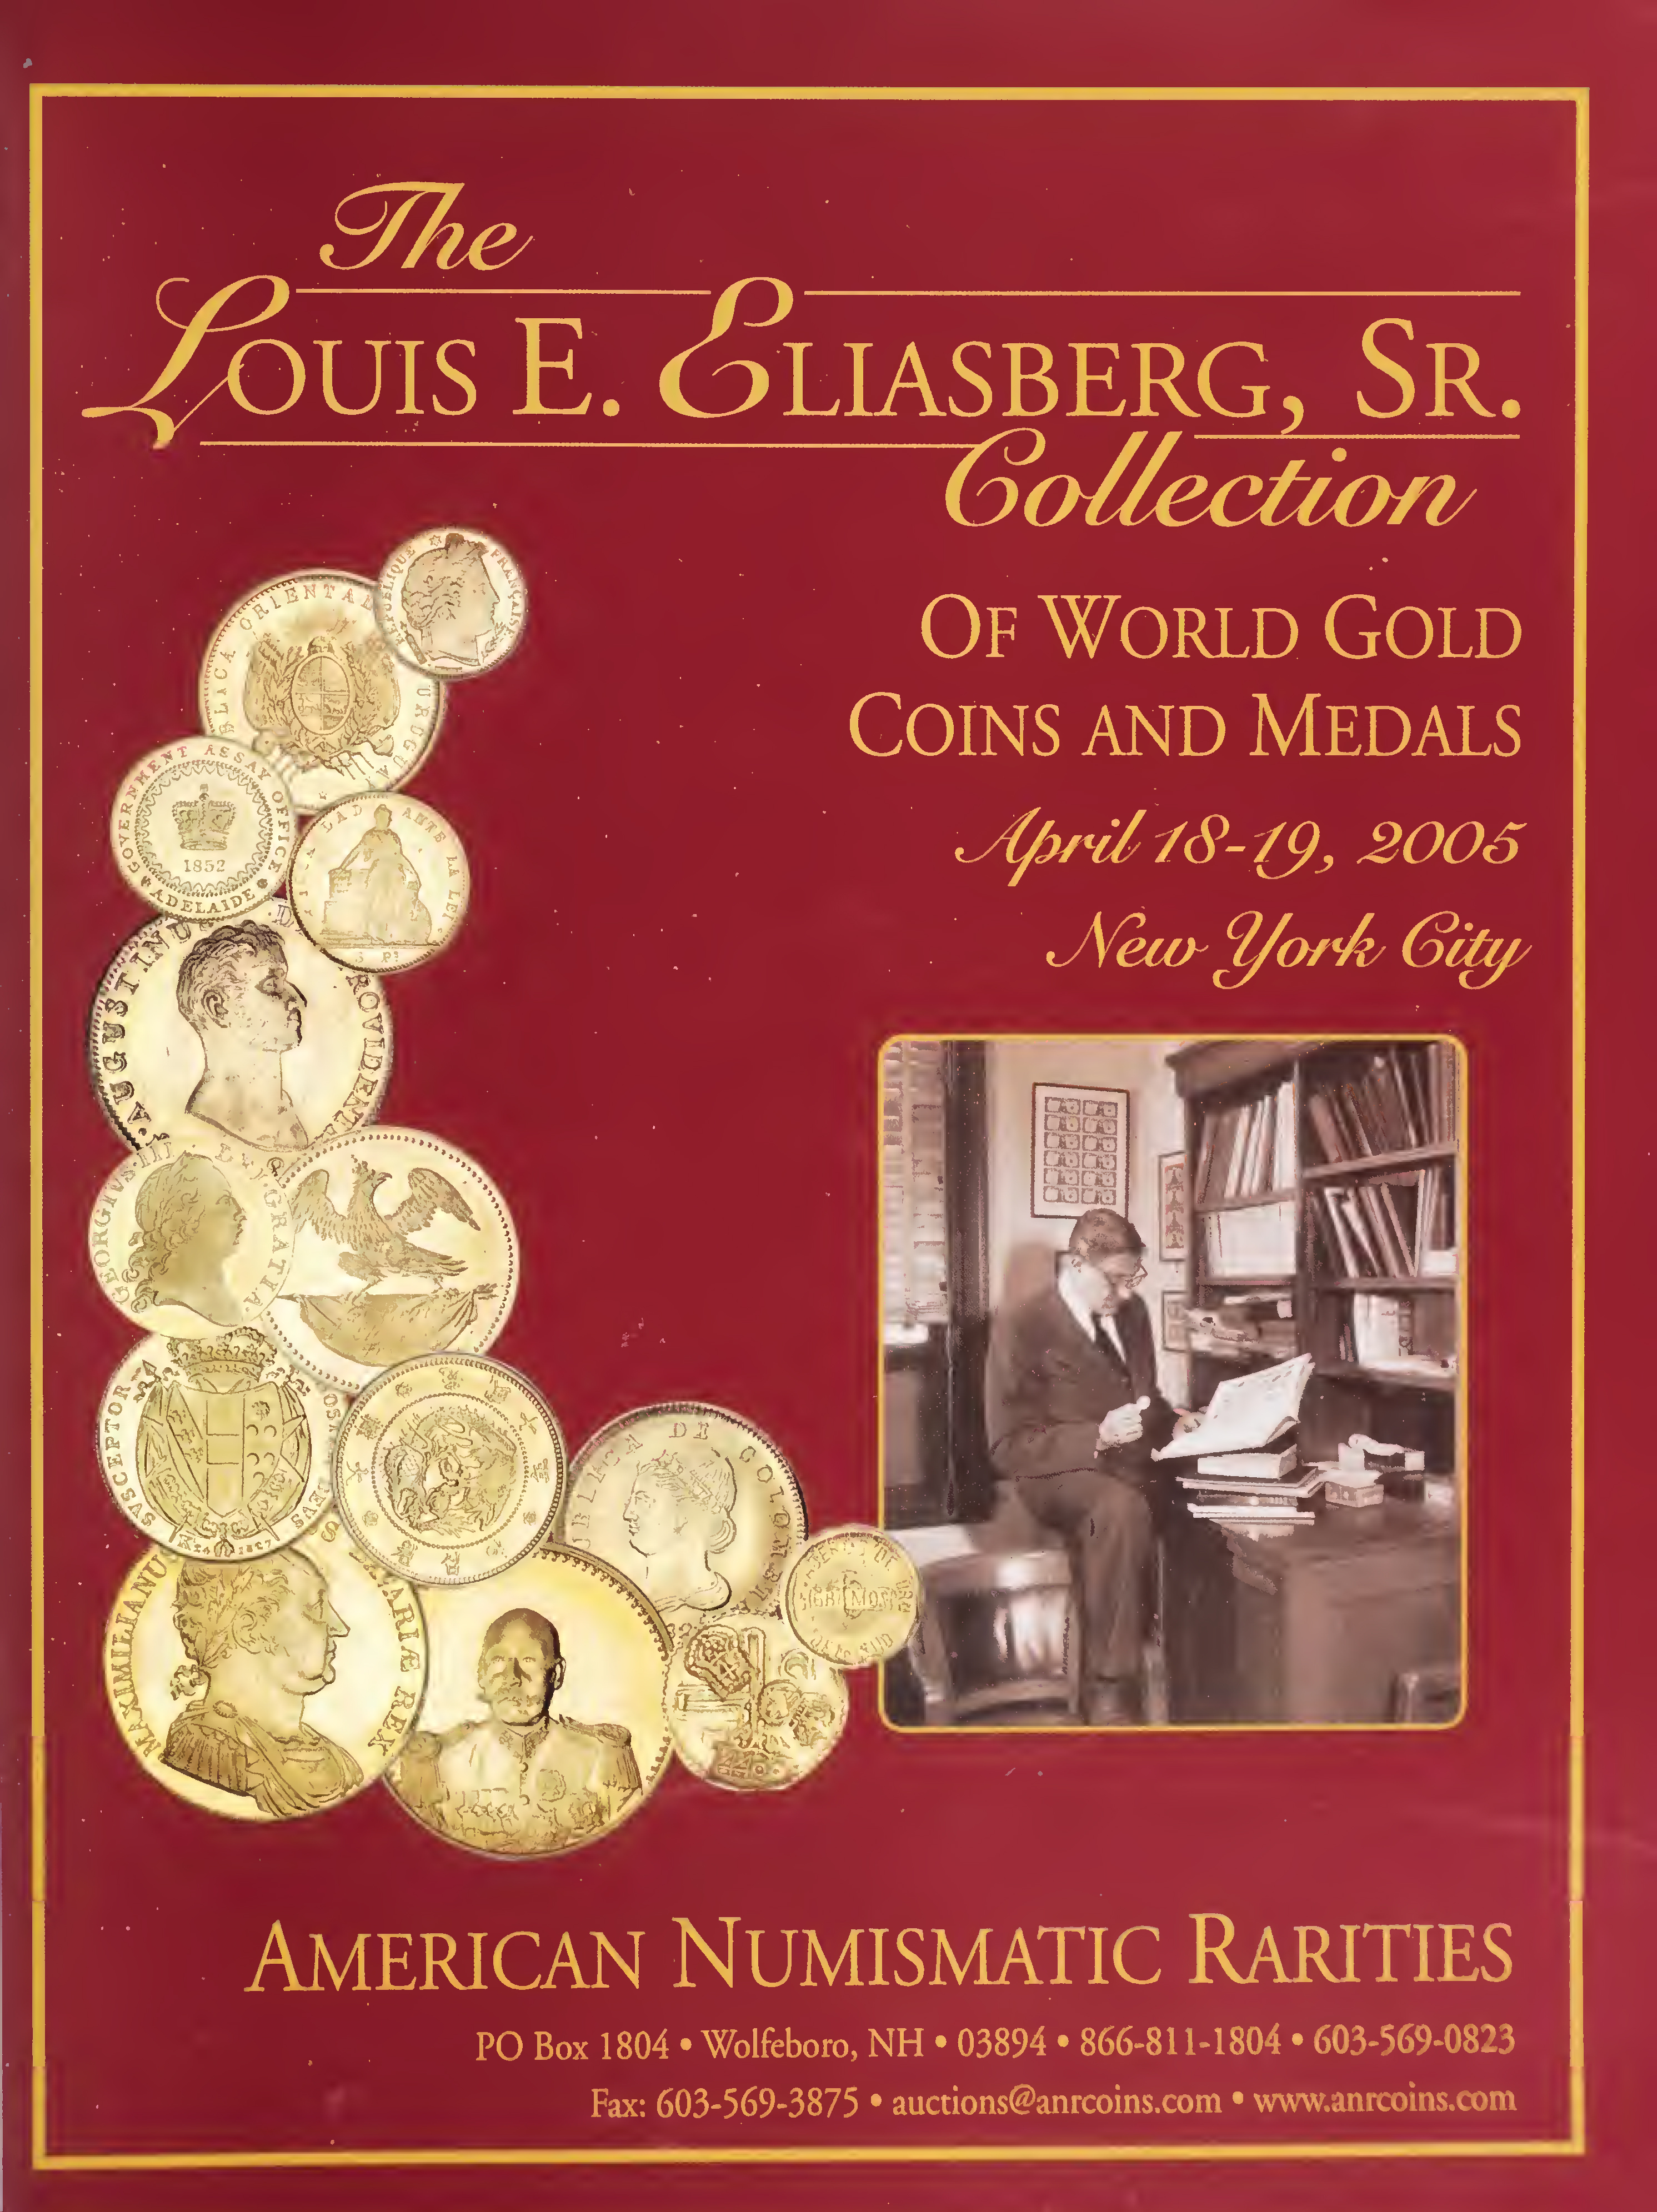 The Louis E. Eliasberg, Sr. Collection of World Gold Coins and Medals